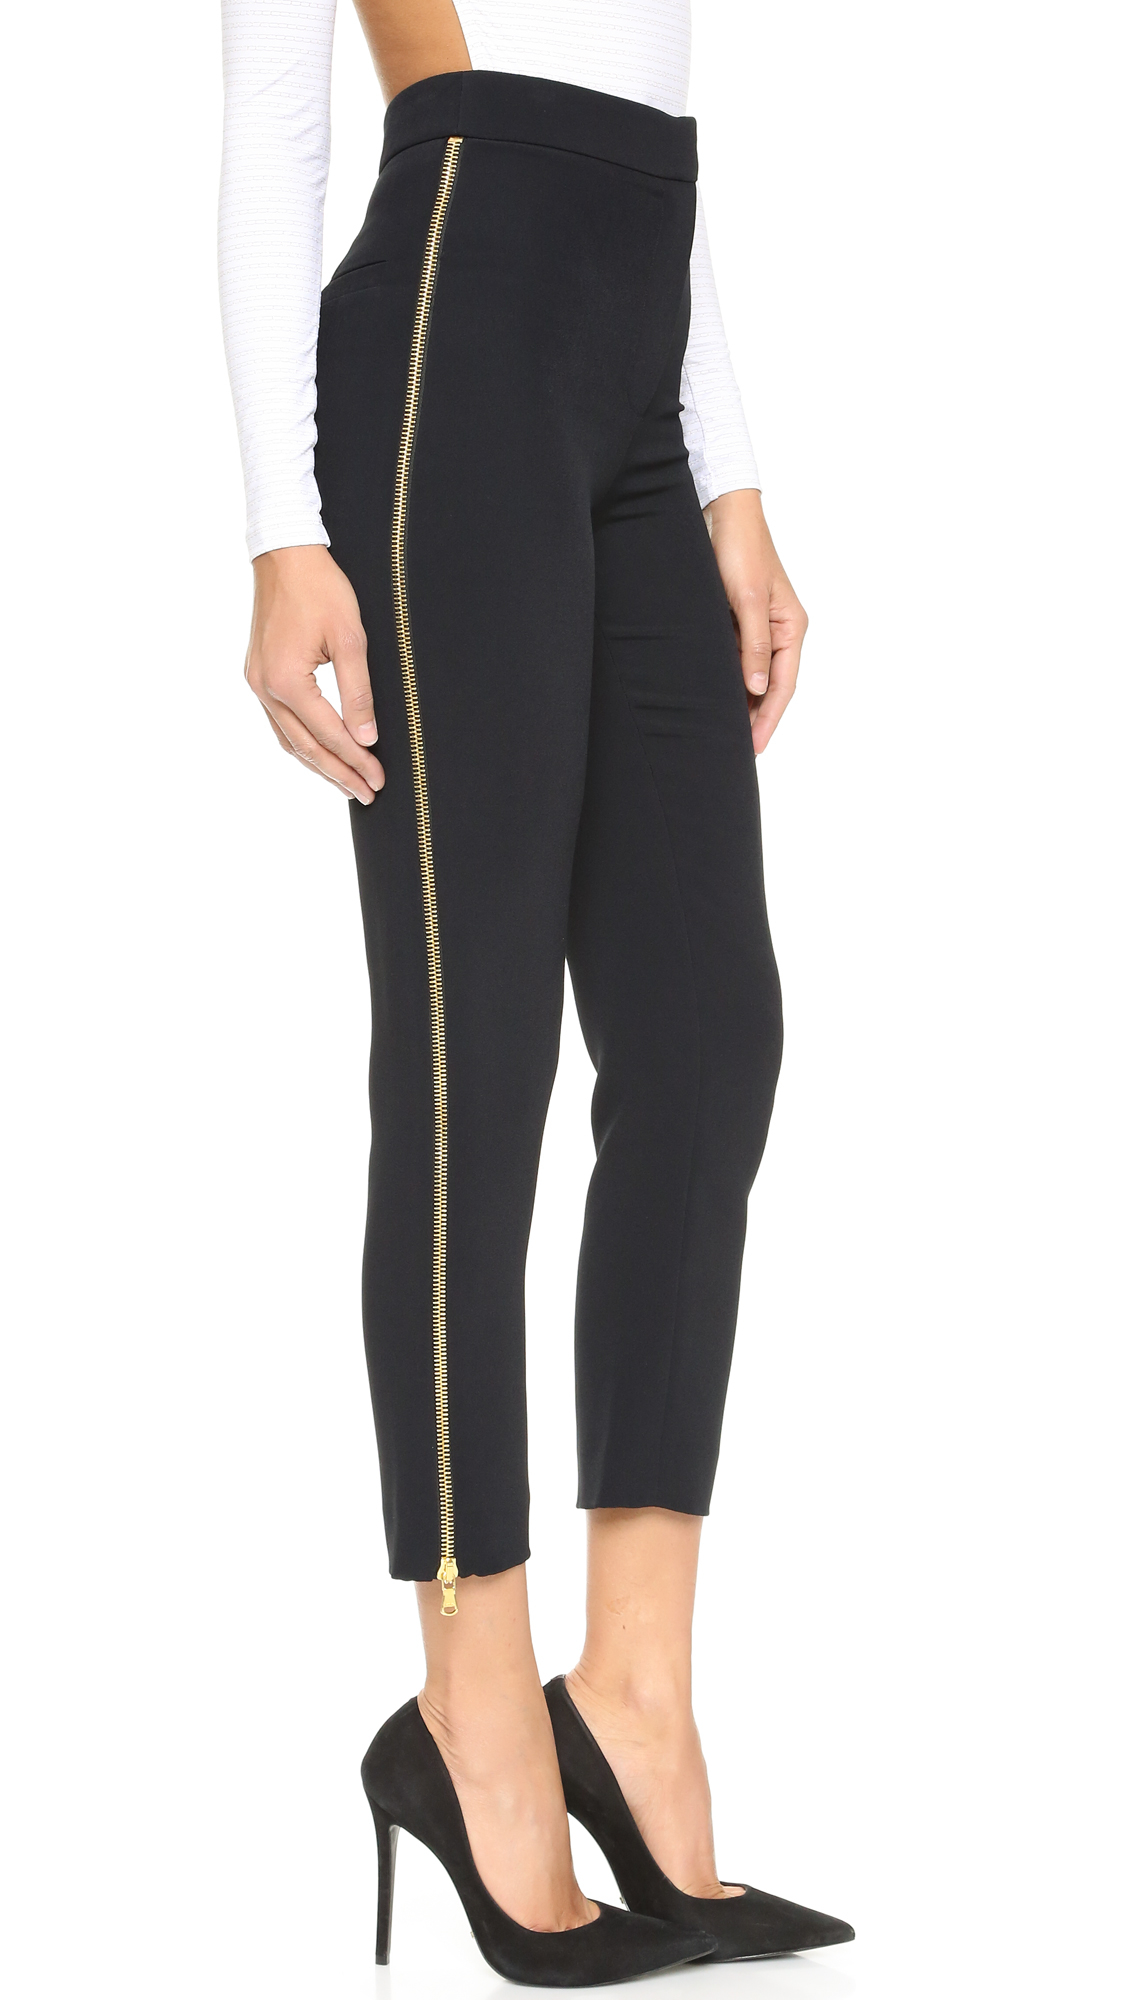 women s black pants side zipper photo - 1